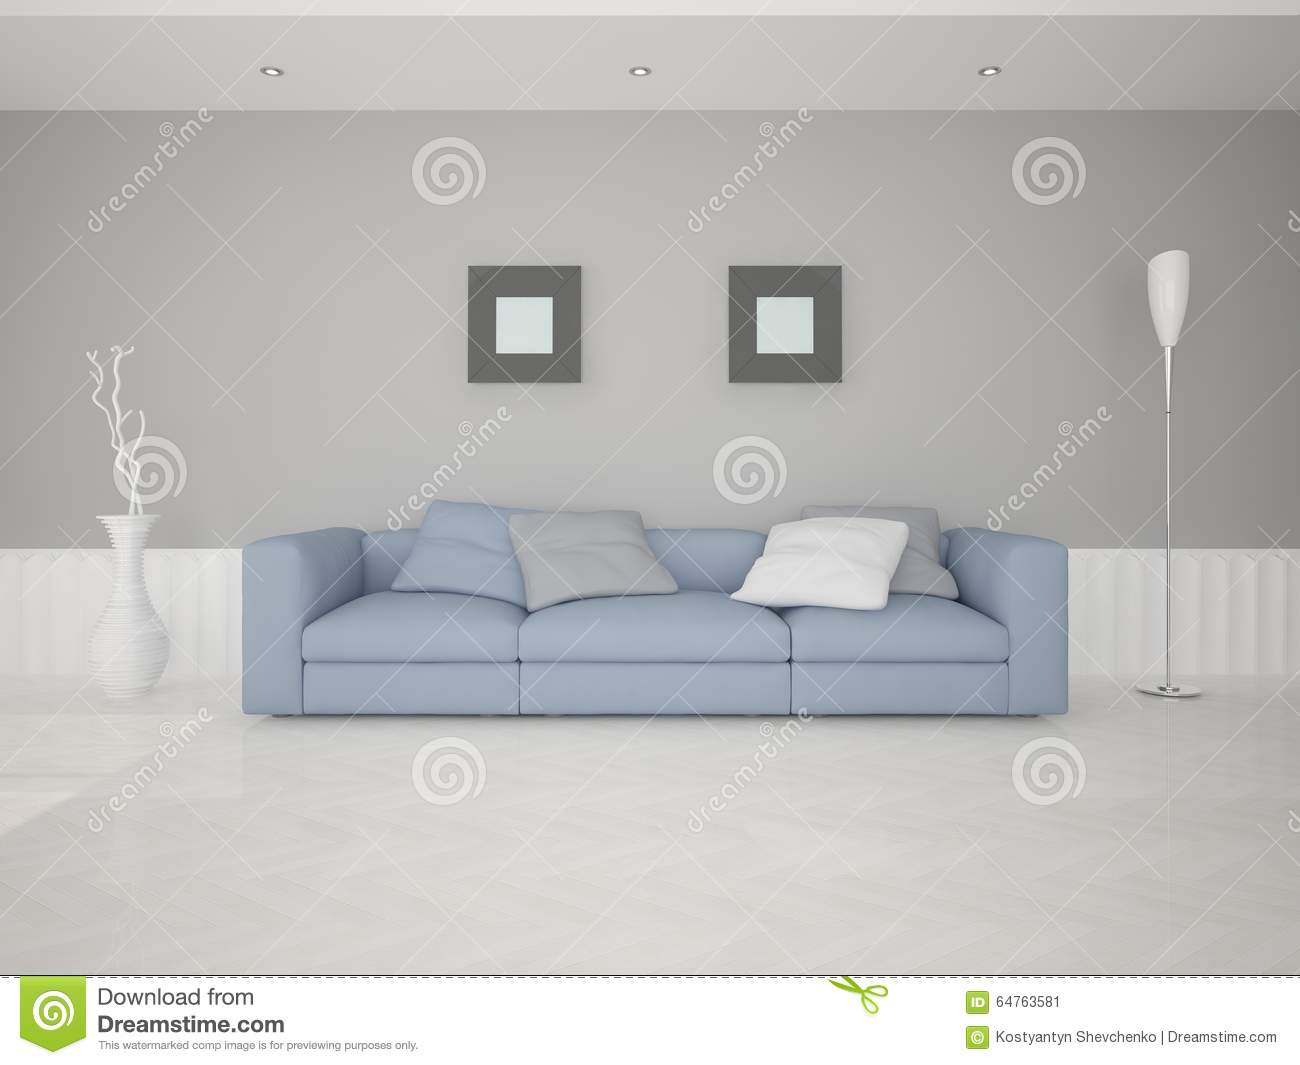 comfortable sofa for living room american furniture in cornell platinum a the stock illustration